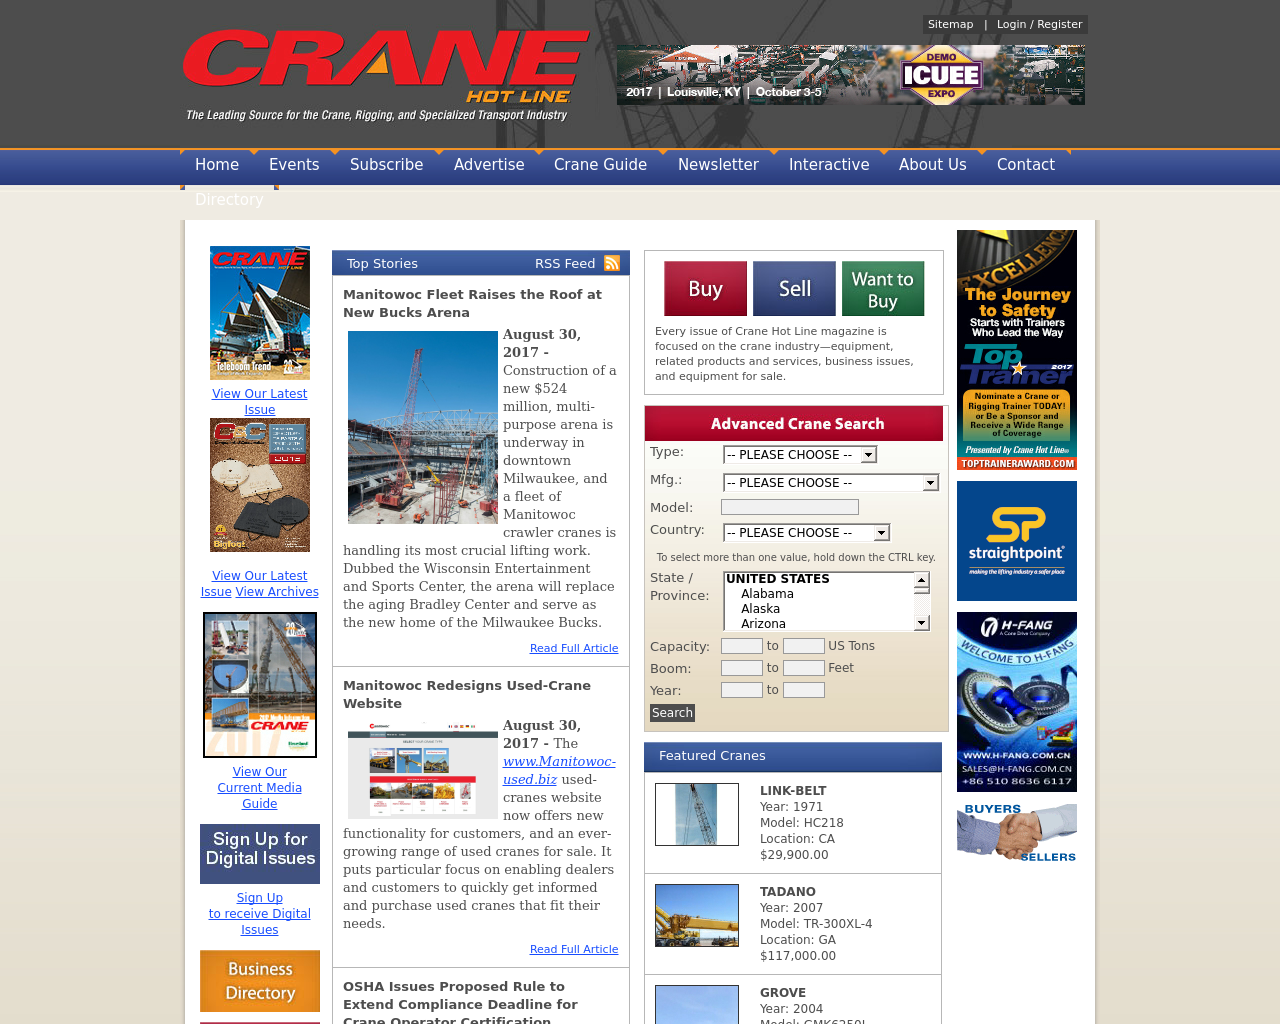 Crane-&-Rigging-Hotline-Advertising-Reviews-Pricing